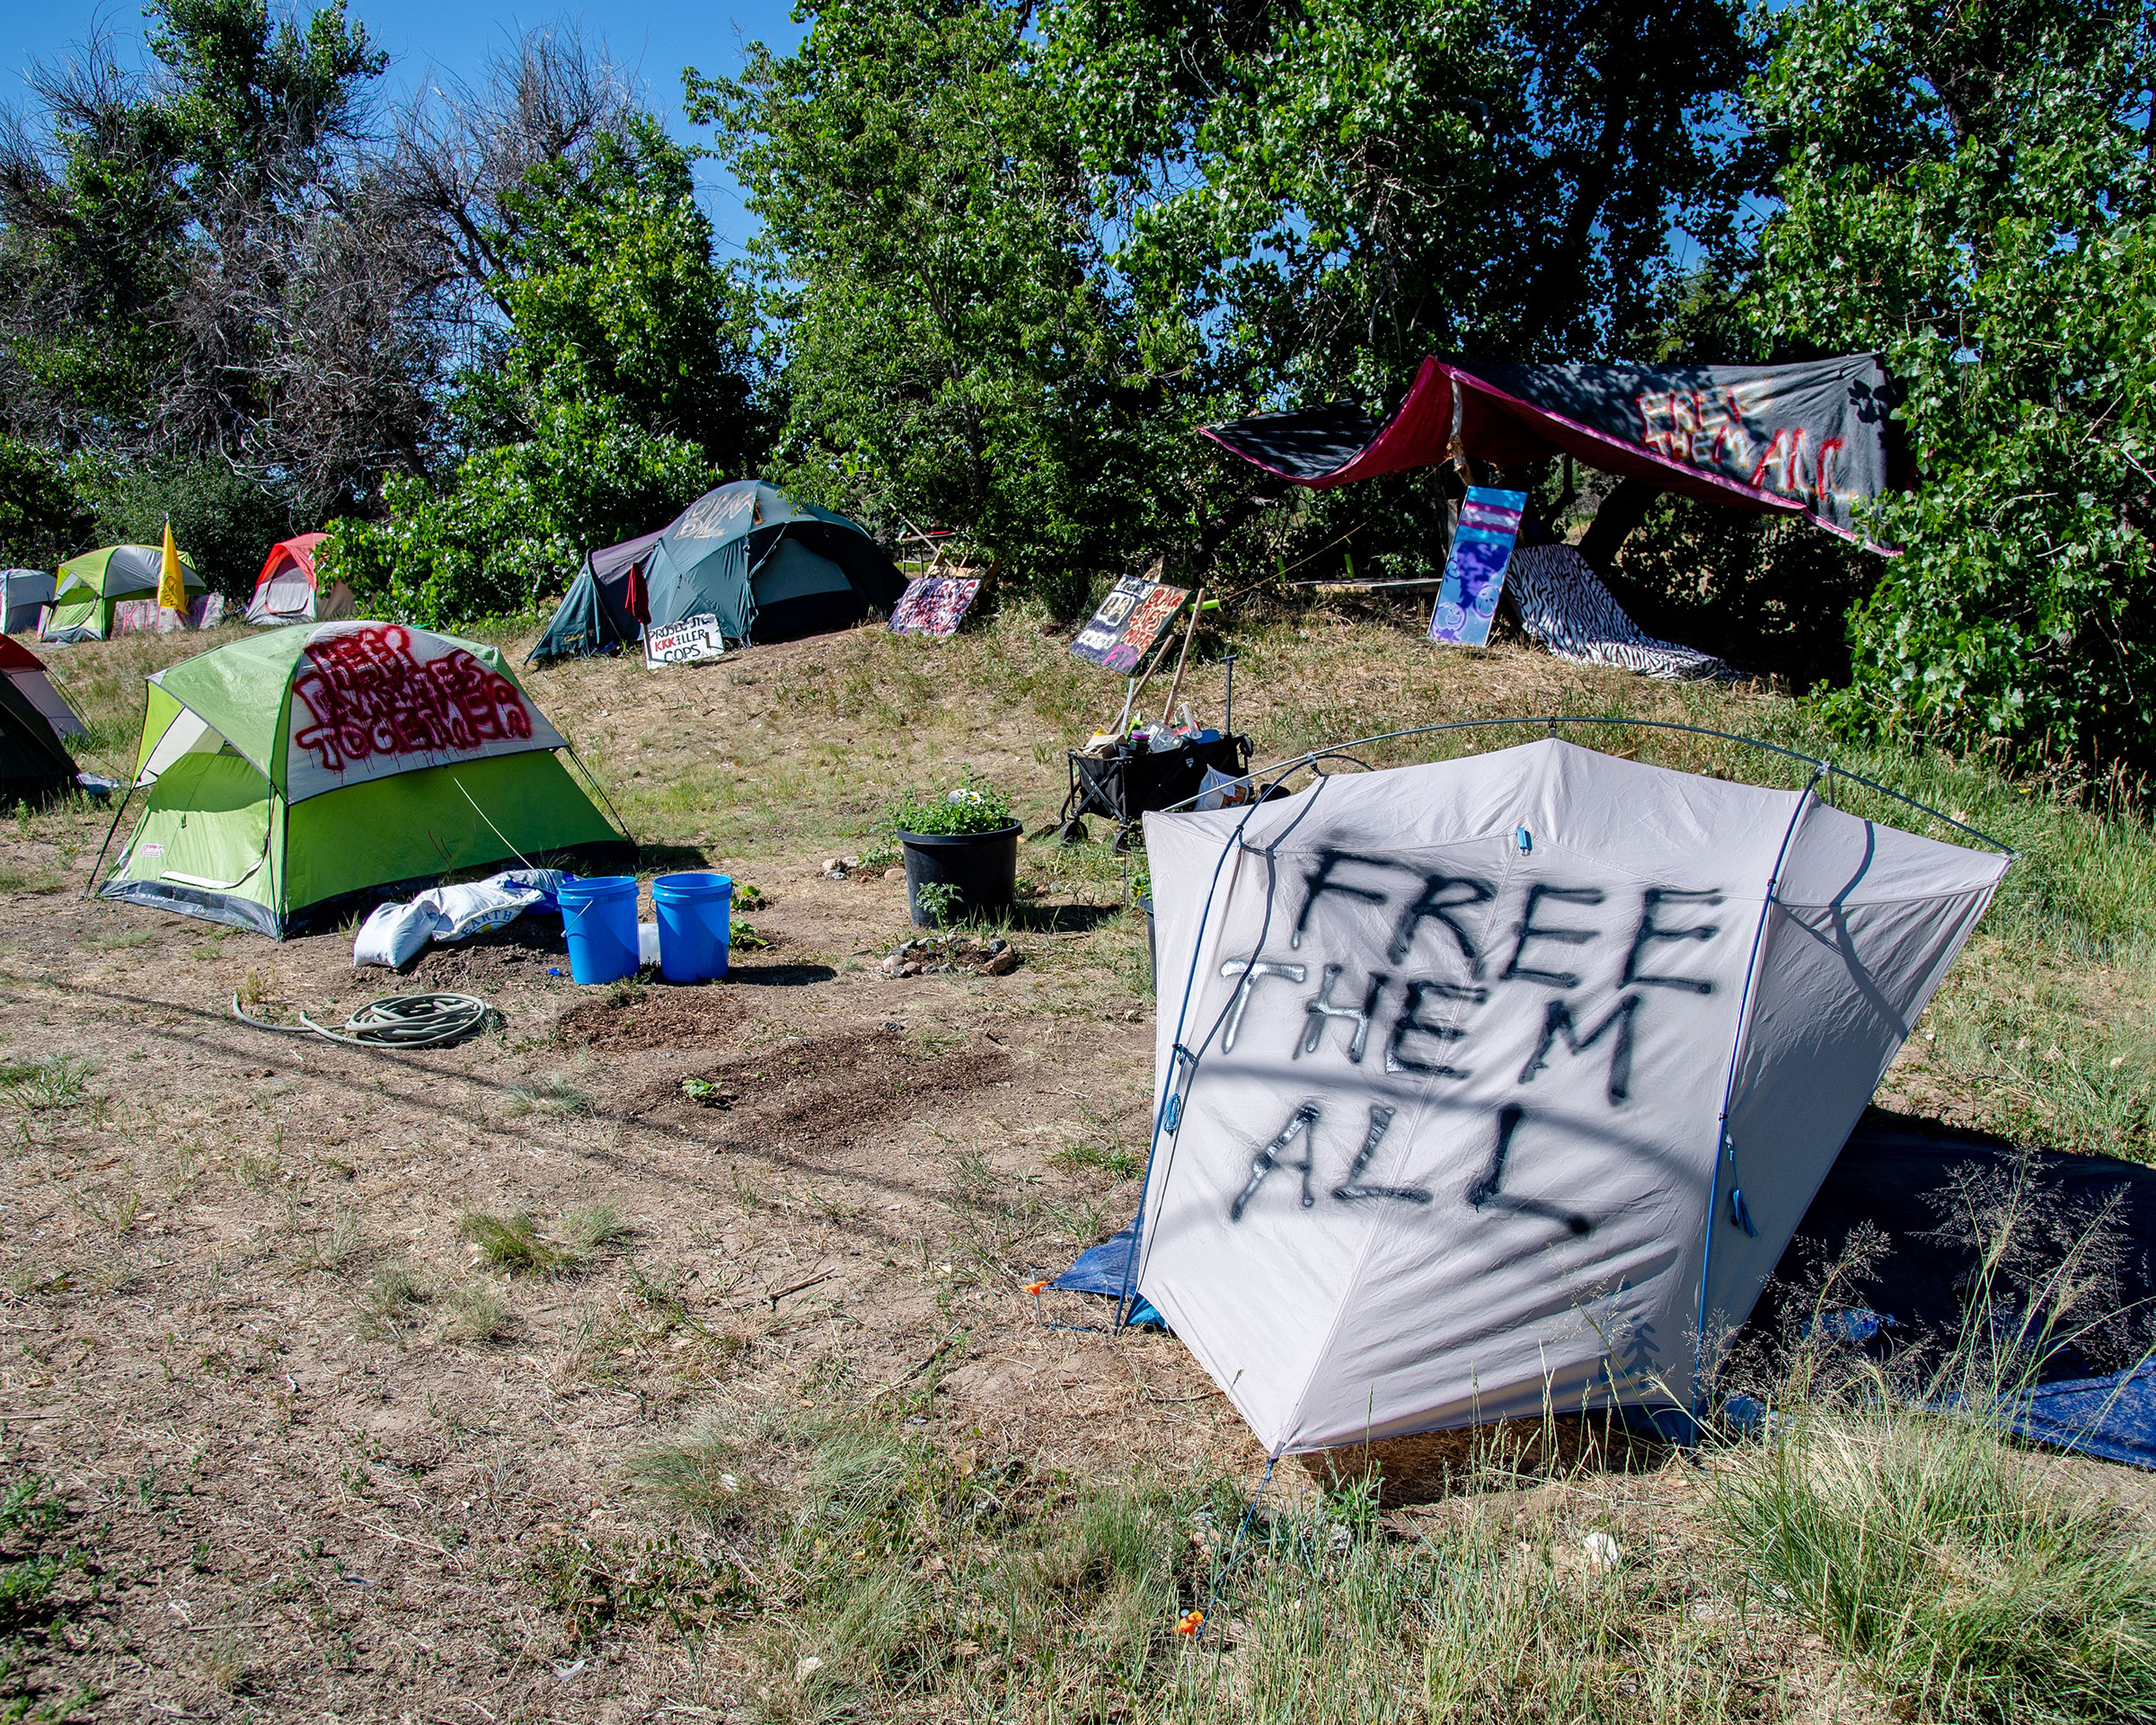 Protestors camp in tents outside of the Aurora ICE Processing Center in Aurora, Colorado on July 5, 2020.